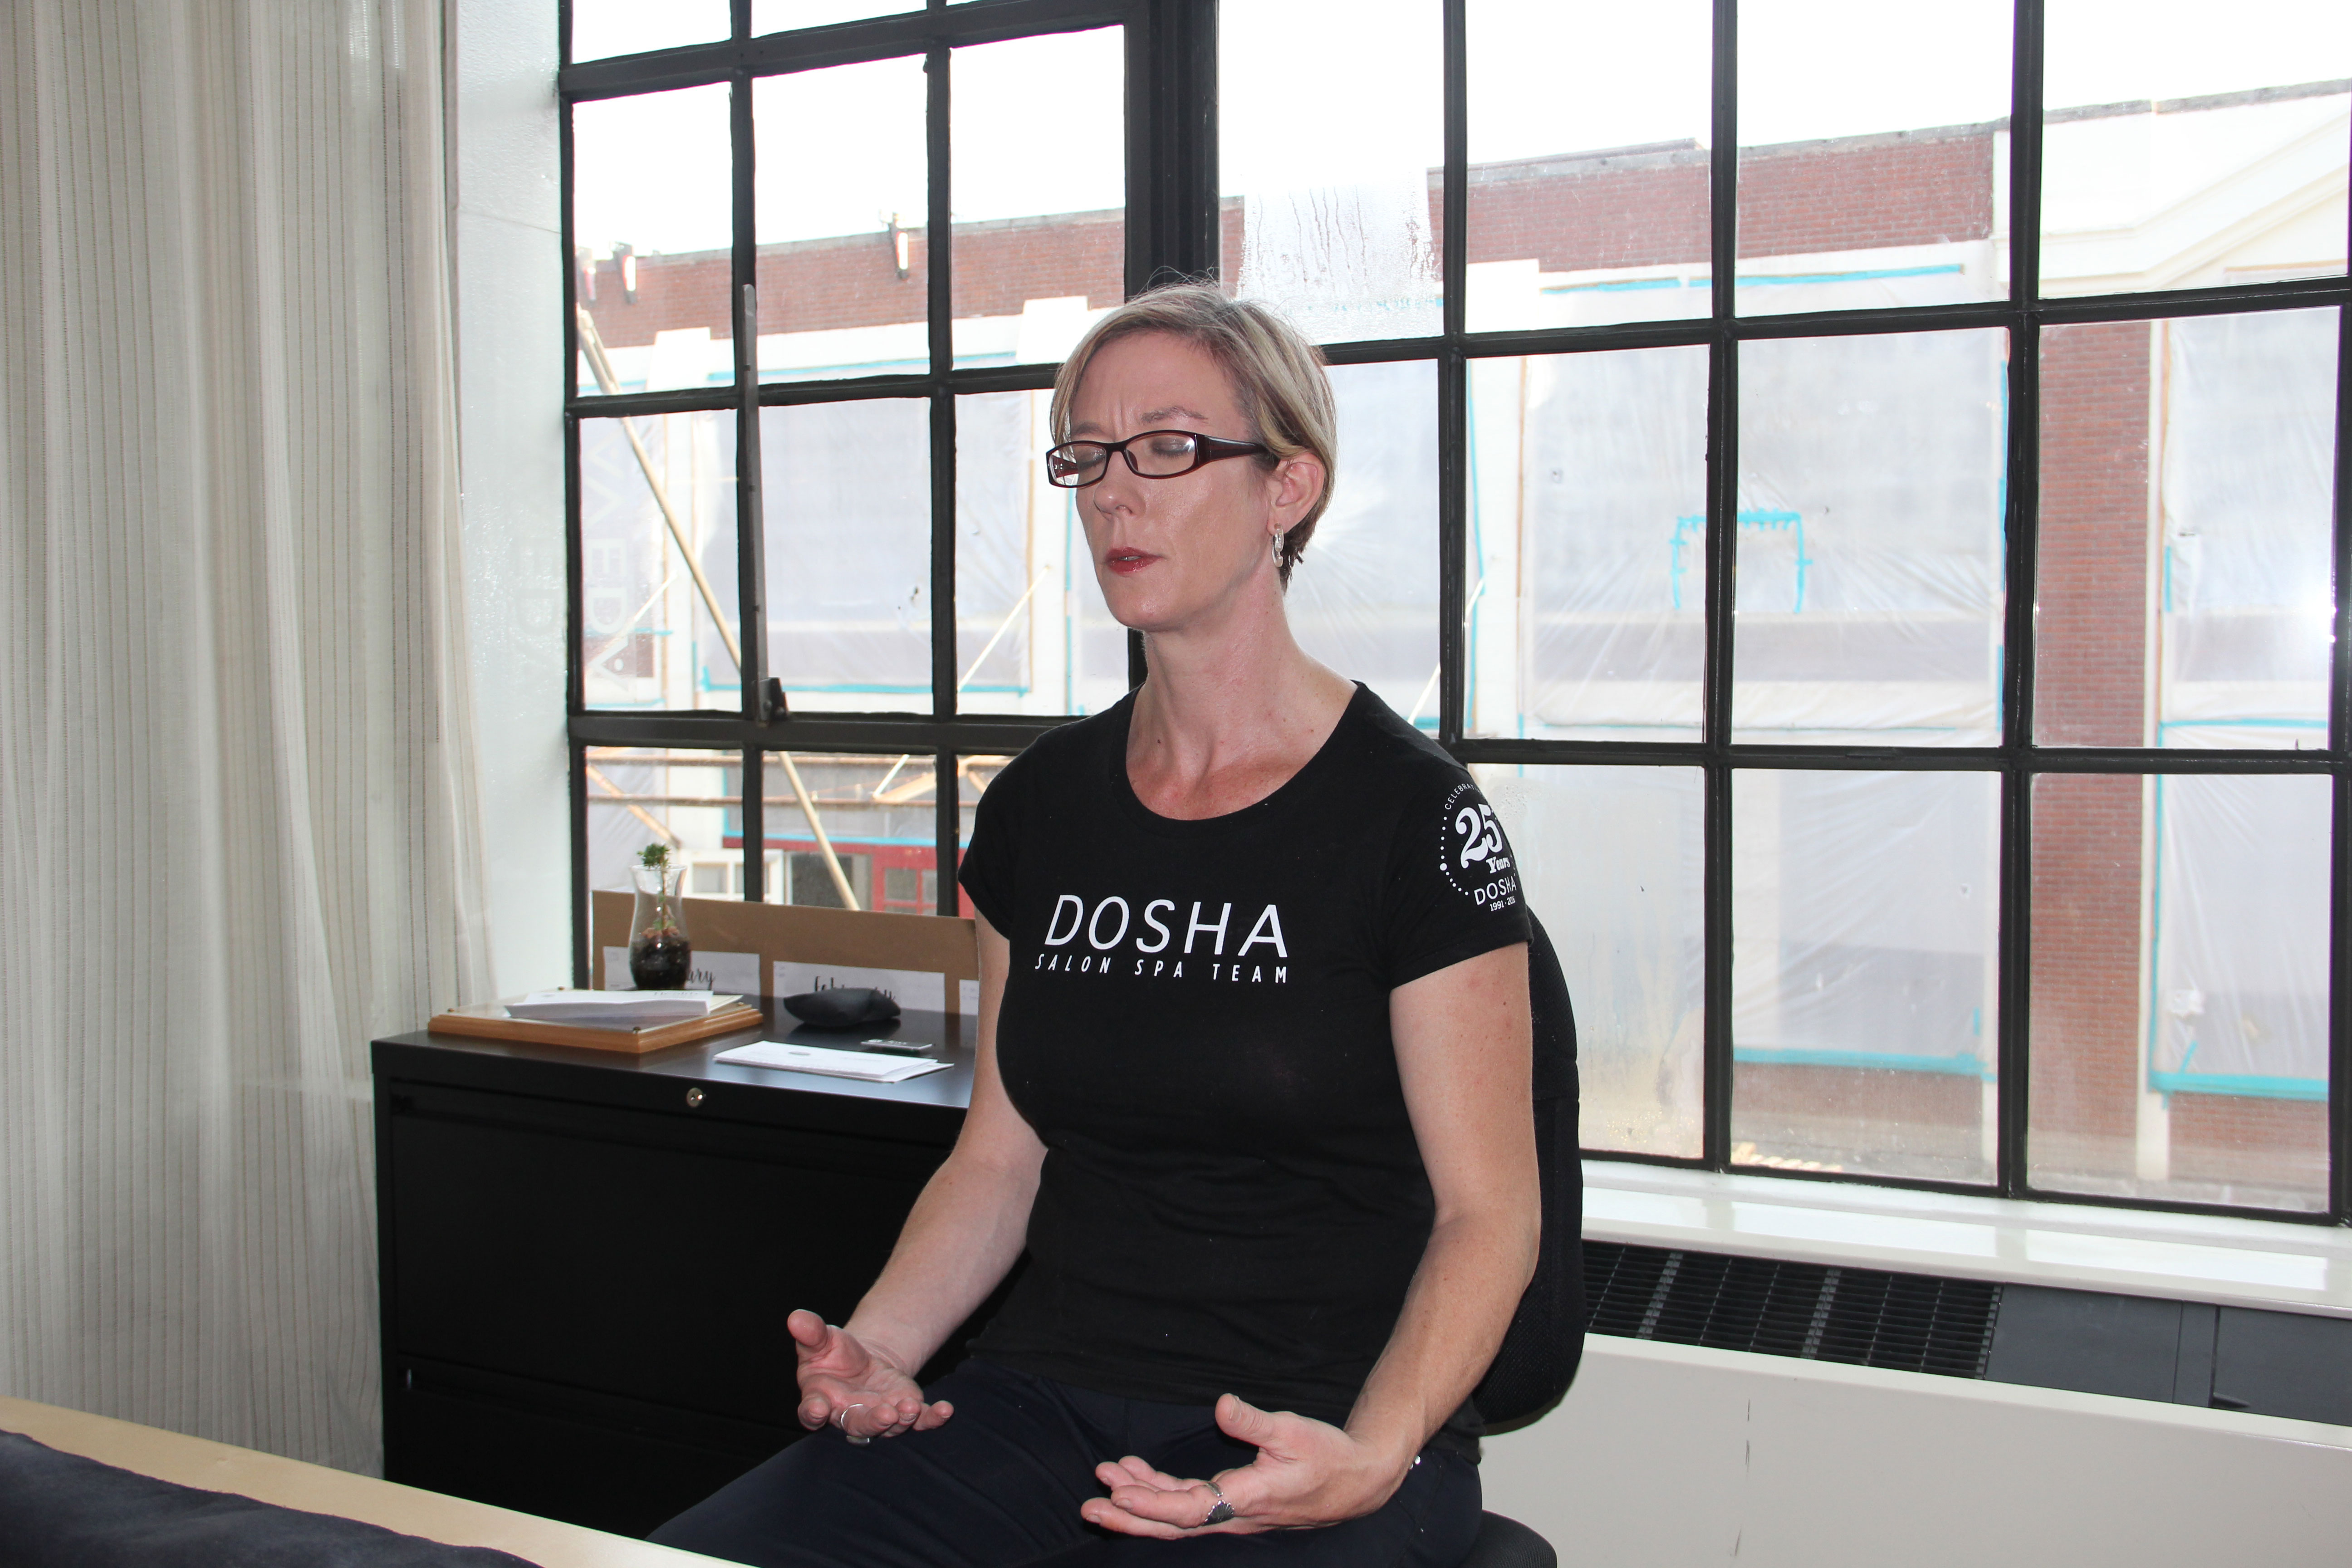 Massage Therapy PDX Dosha Spa Body Wellness Tension relief